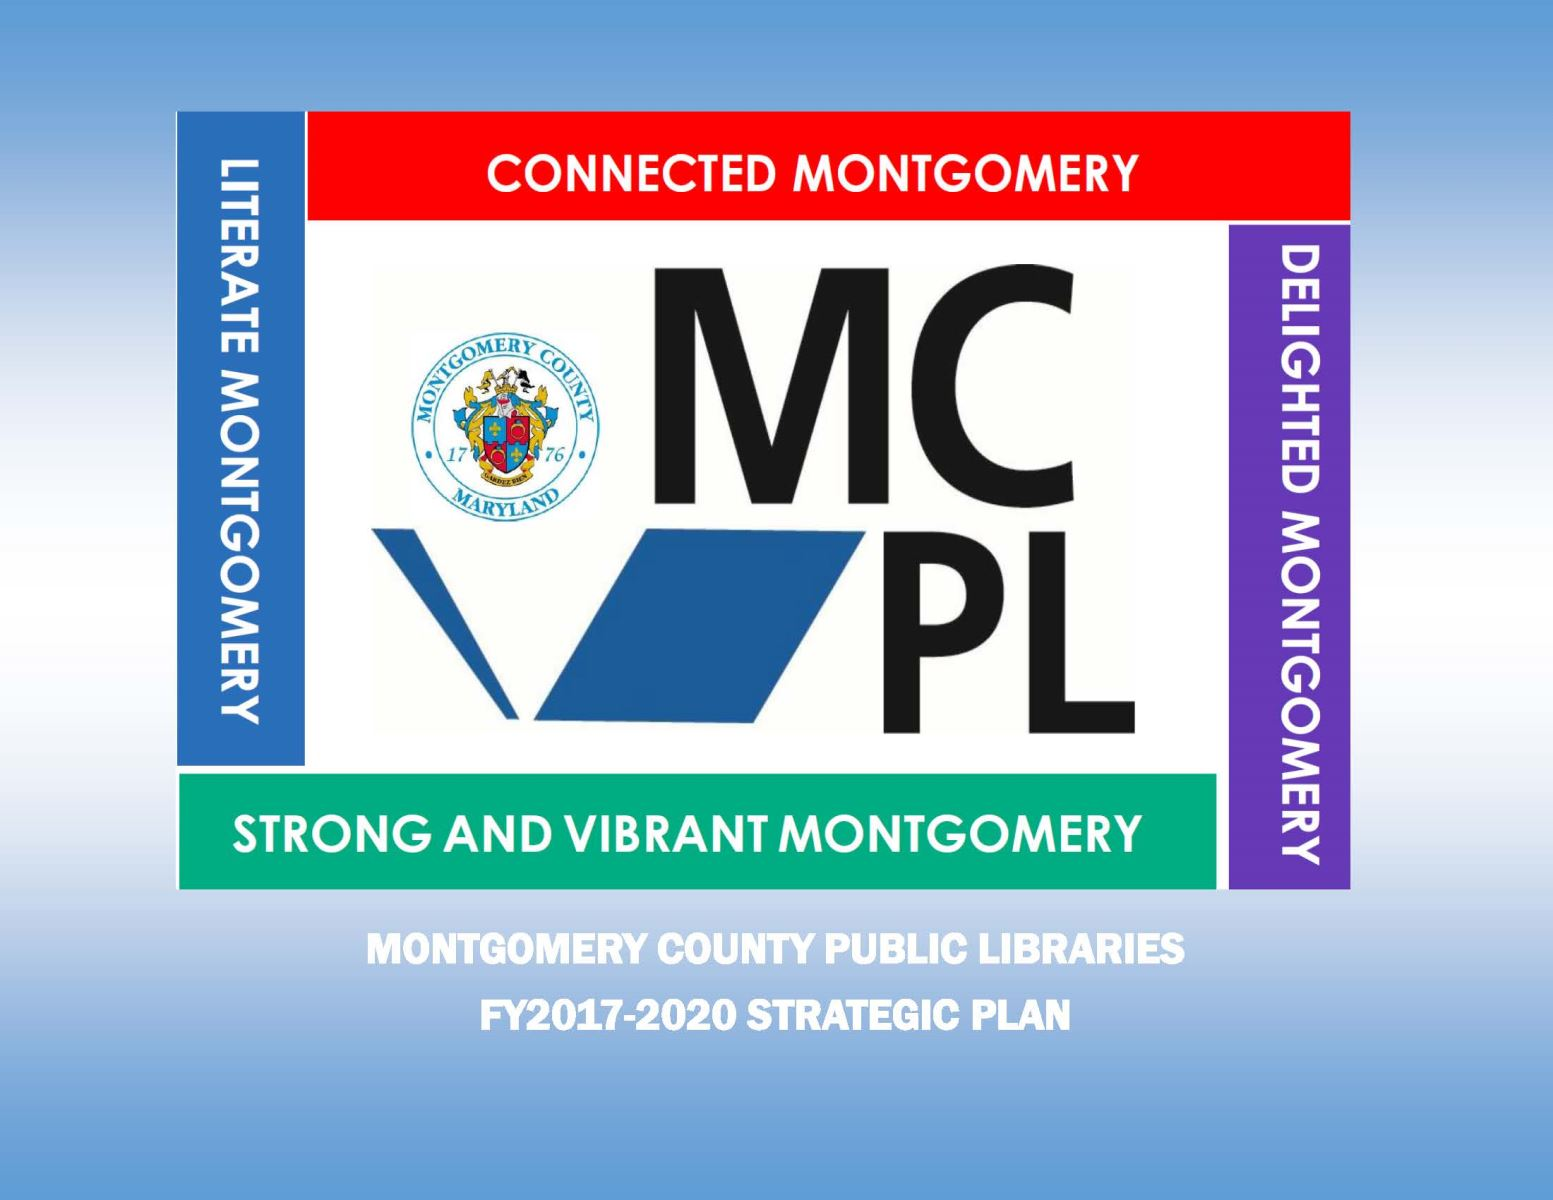 MCPL logo with literate montgomery, connected montgomery, strong and vibrant montgomery, and delighted montgomery written around